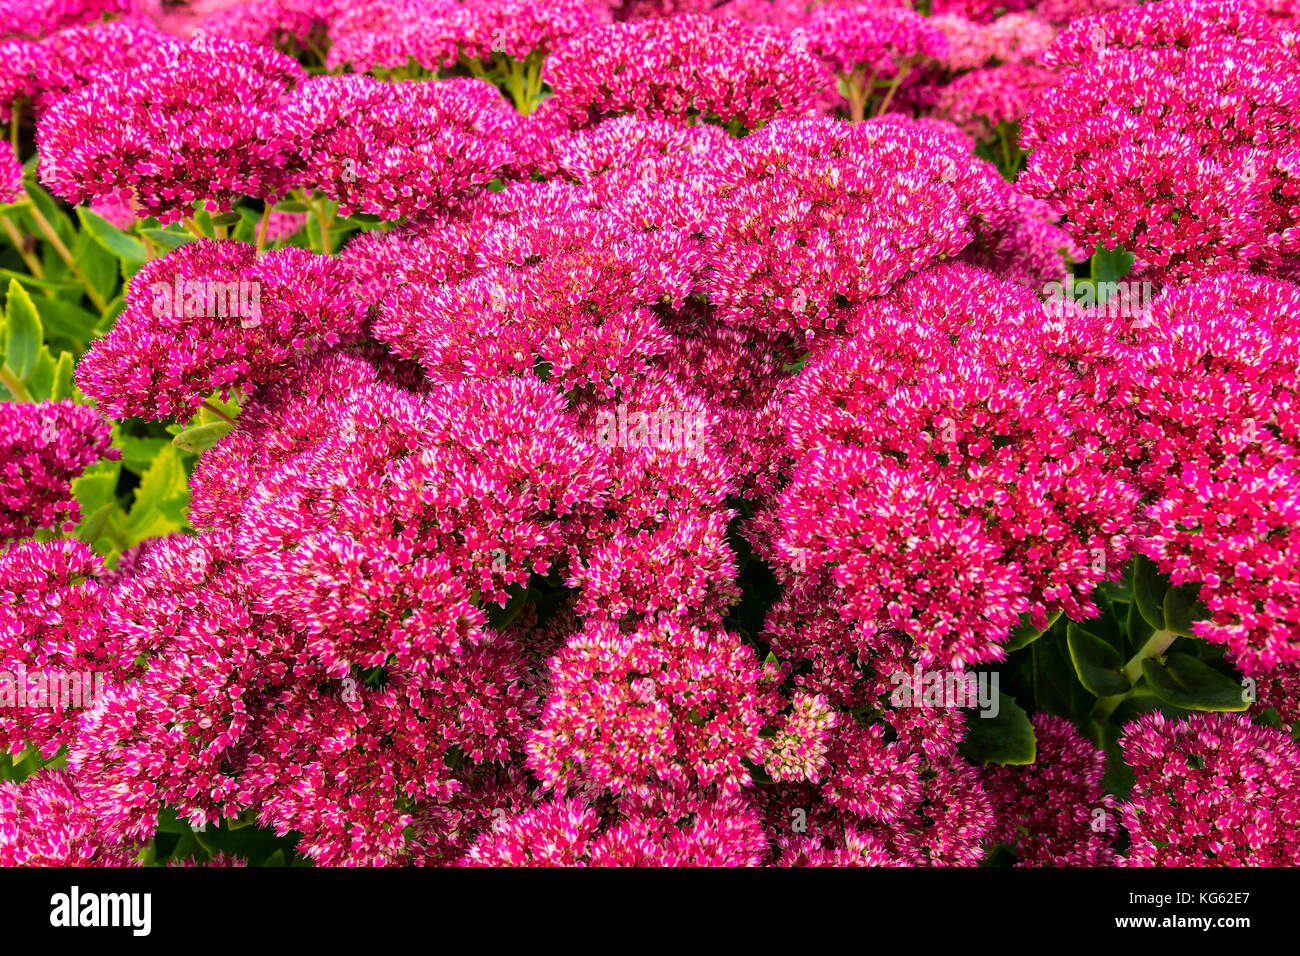 sedum stockfotos sedum bilder alamy. Black Bedroom Furniture Sets. Home Design Ideas